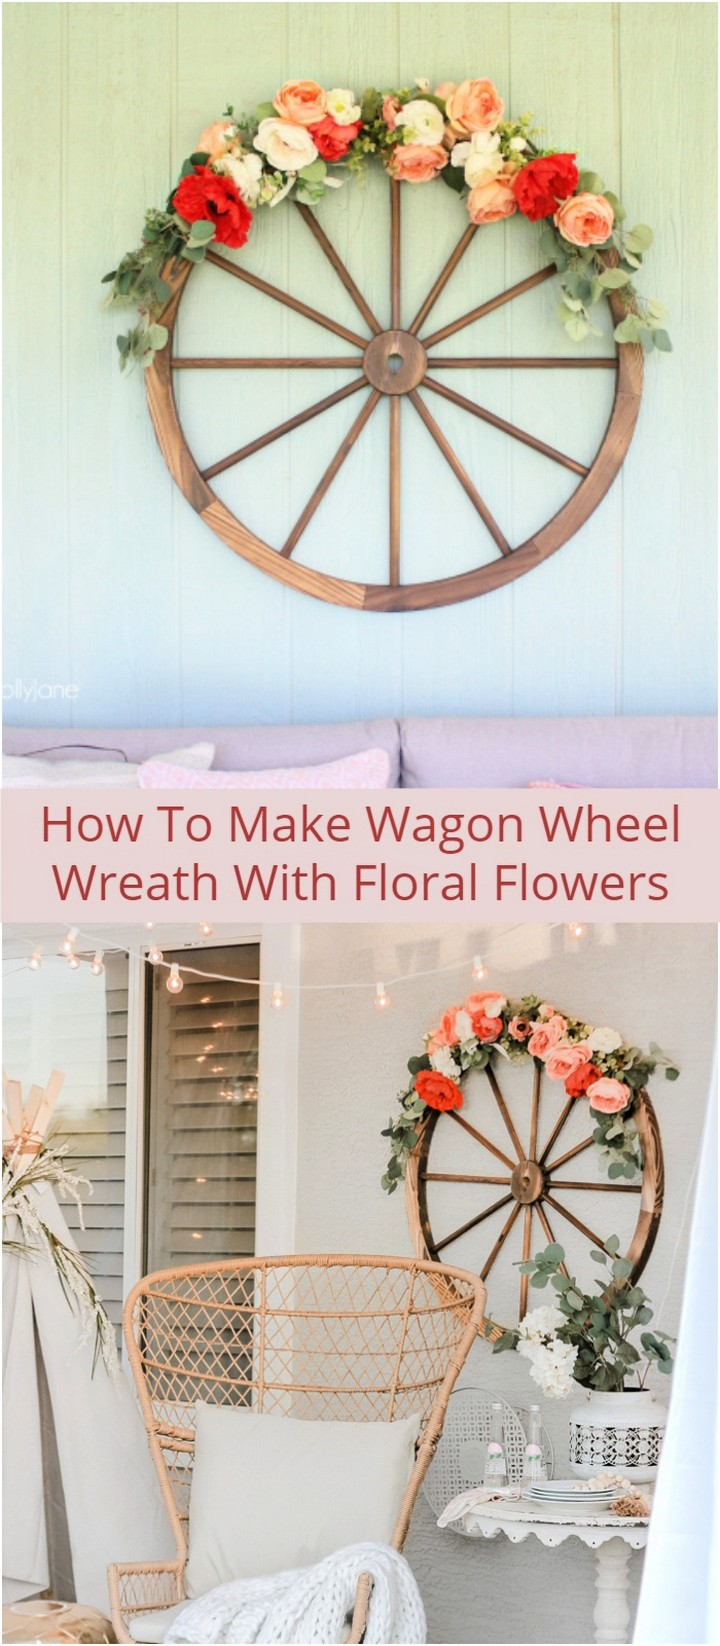 How To Make Wagon Wheel Wreath With Floral Flowers